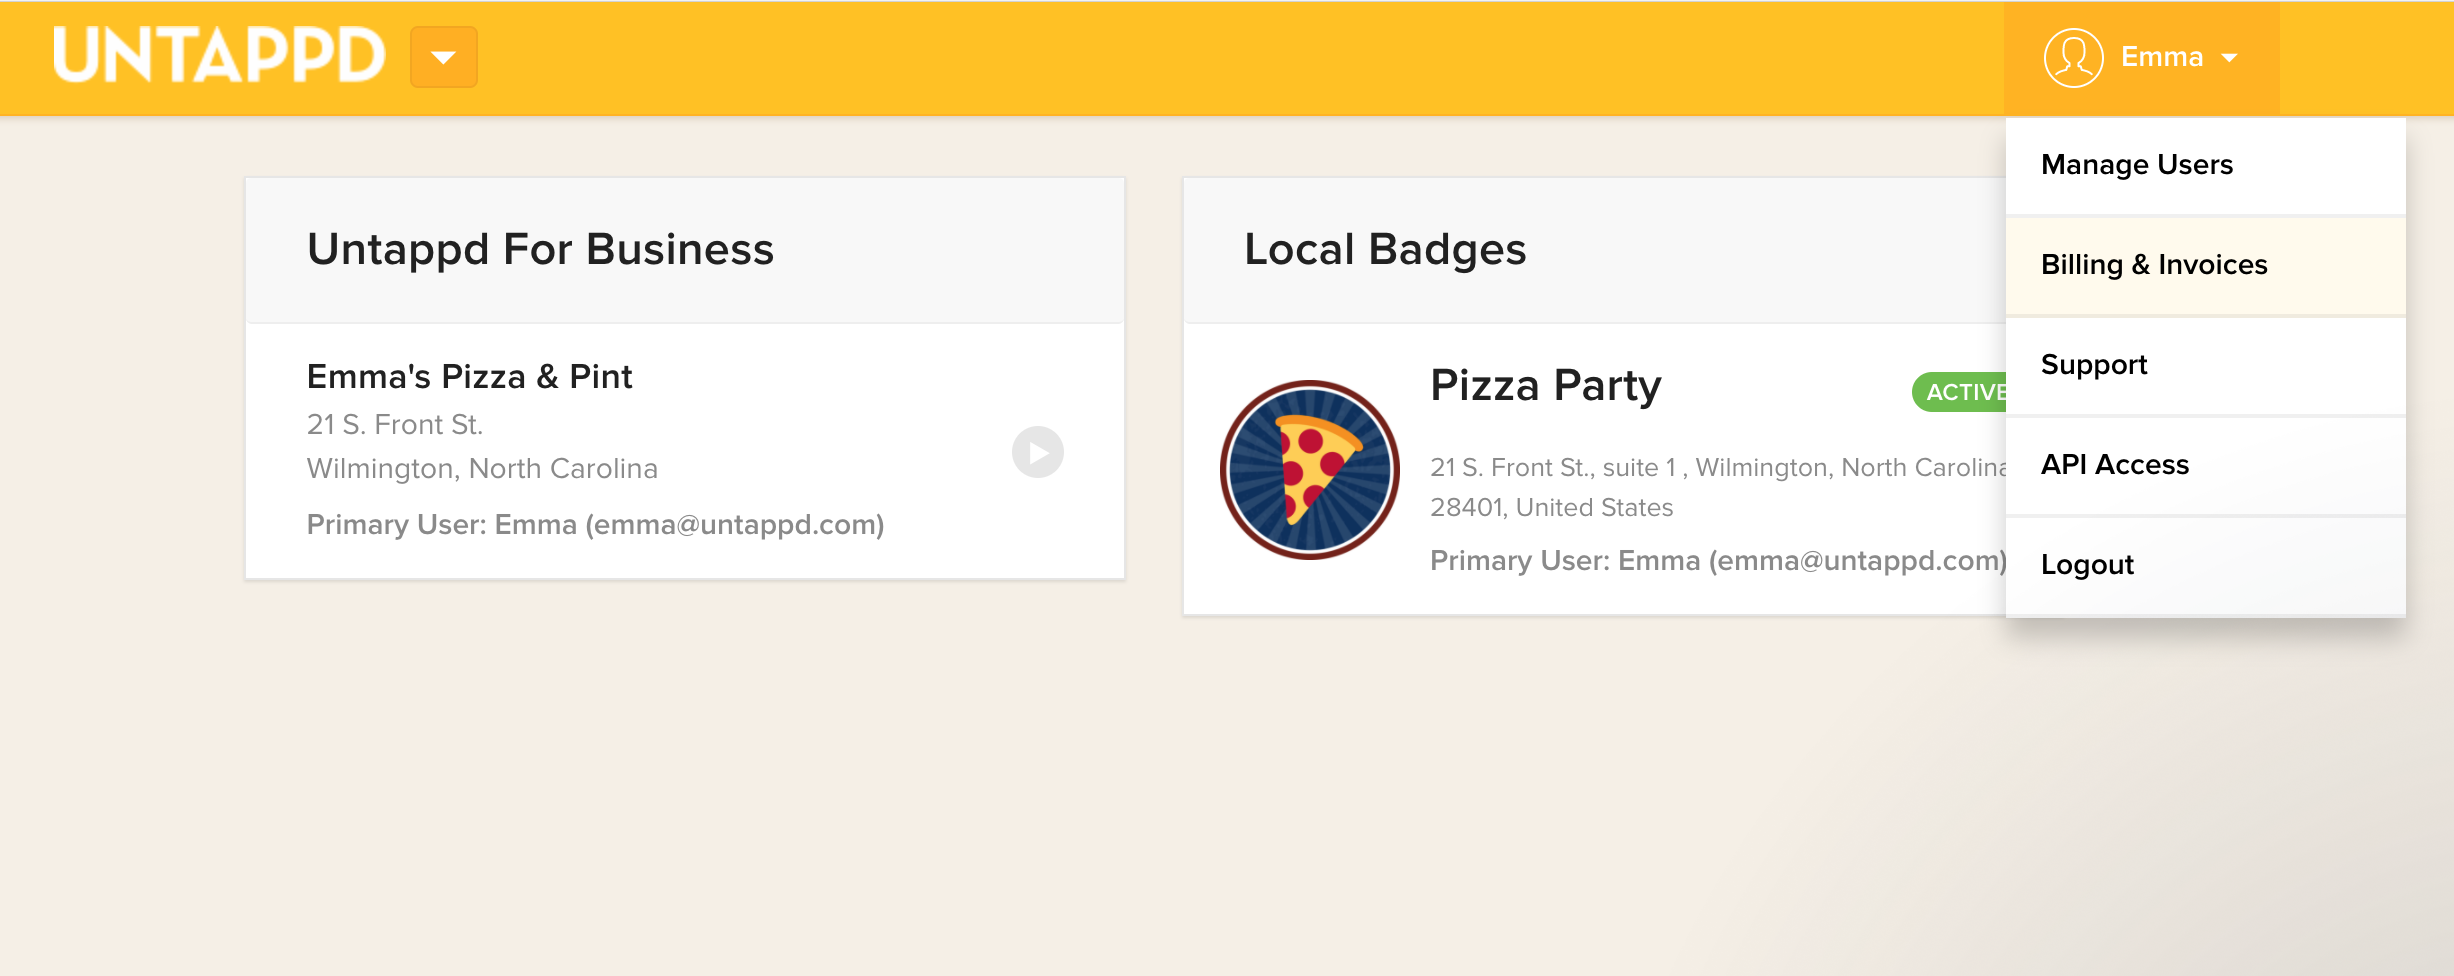 billing invoices untappd for business